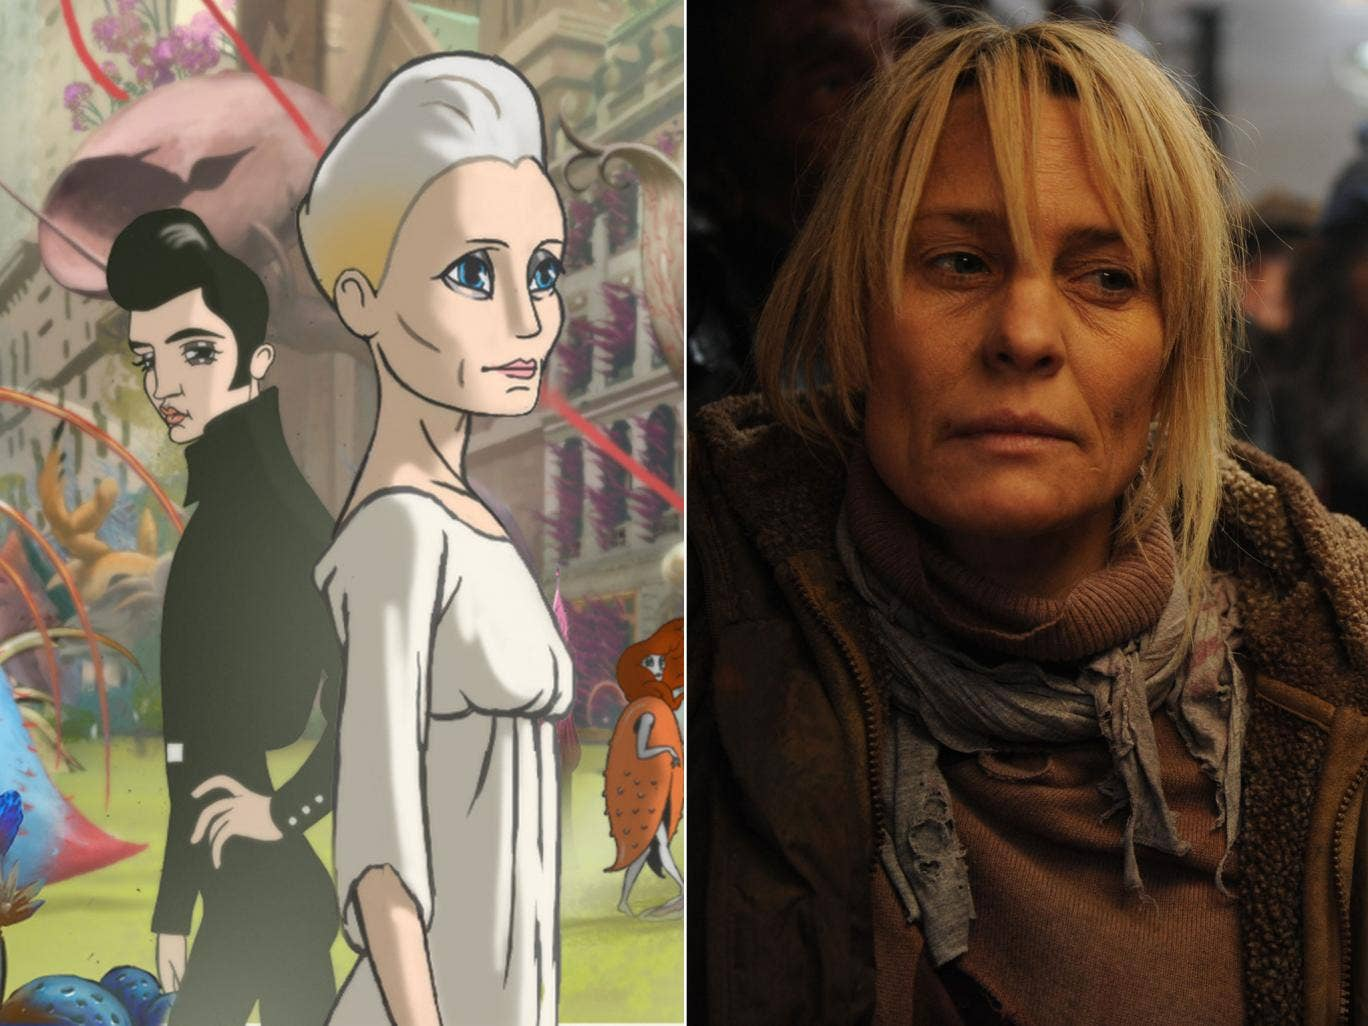 Tough cel: Robin Wright plays animated and human versions of herself in Ari Folman's 'The Congress'